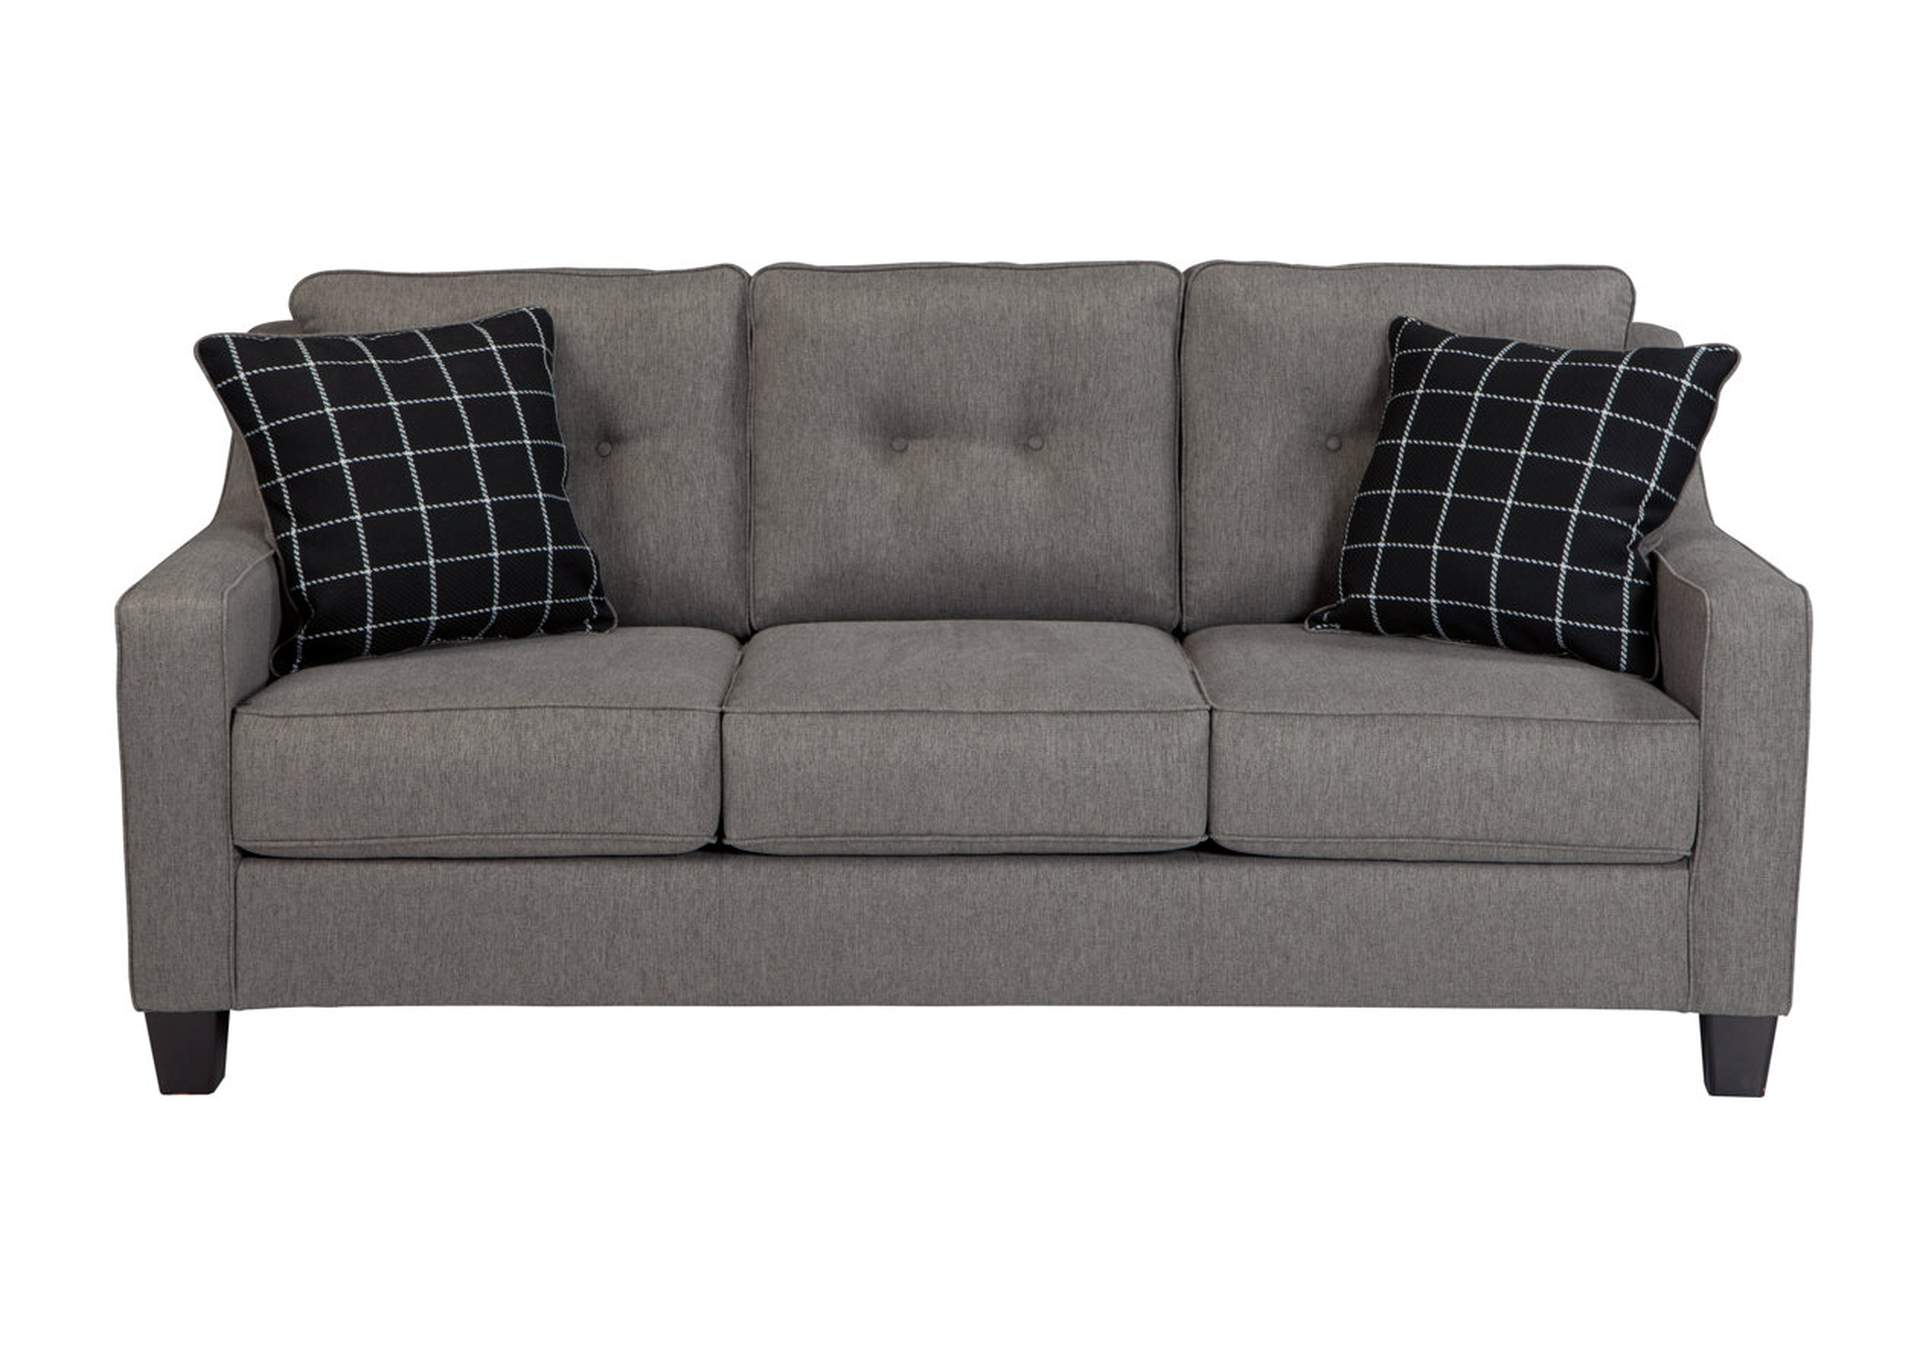 Ashley Alenya Queen Sleeper Sofa picture on faux leather ottoman w storage ashley furniture with Ashley Alenya Queen Sleeper Sofa, sofa eedb4f98fb335bc9fad732d6be17d0bd